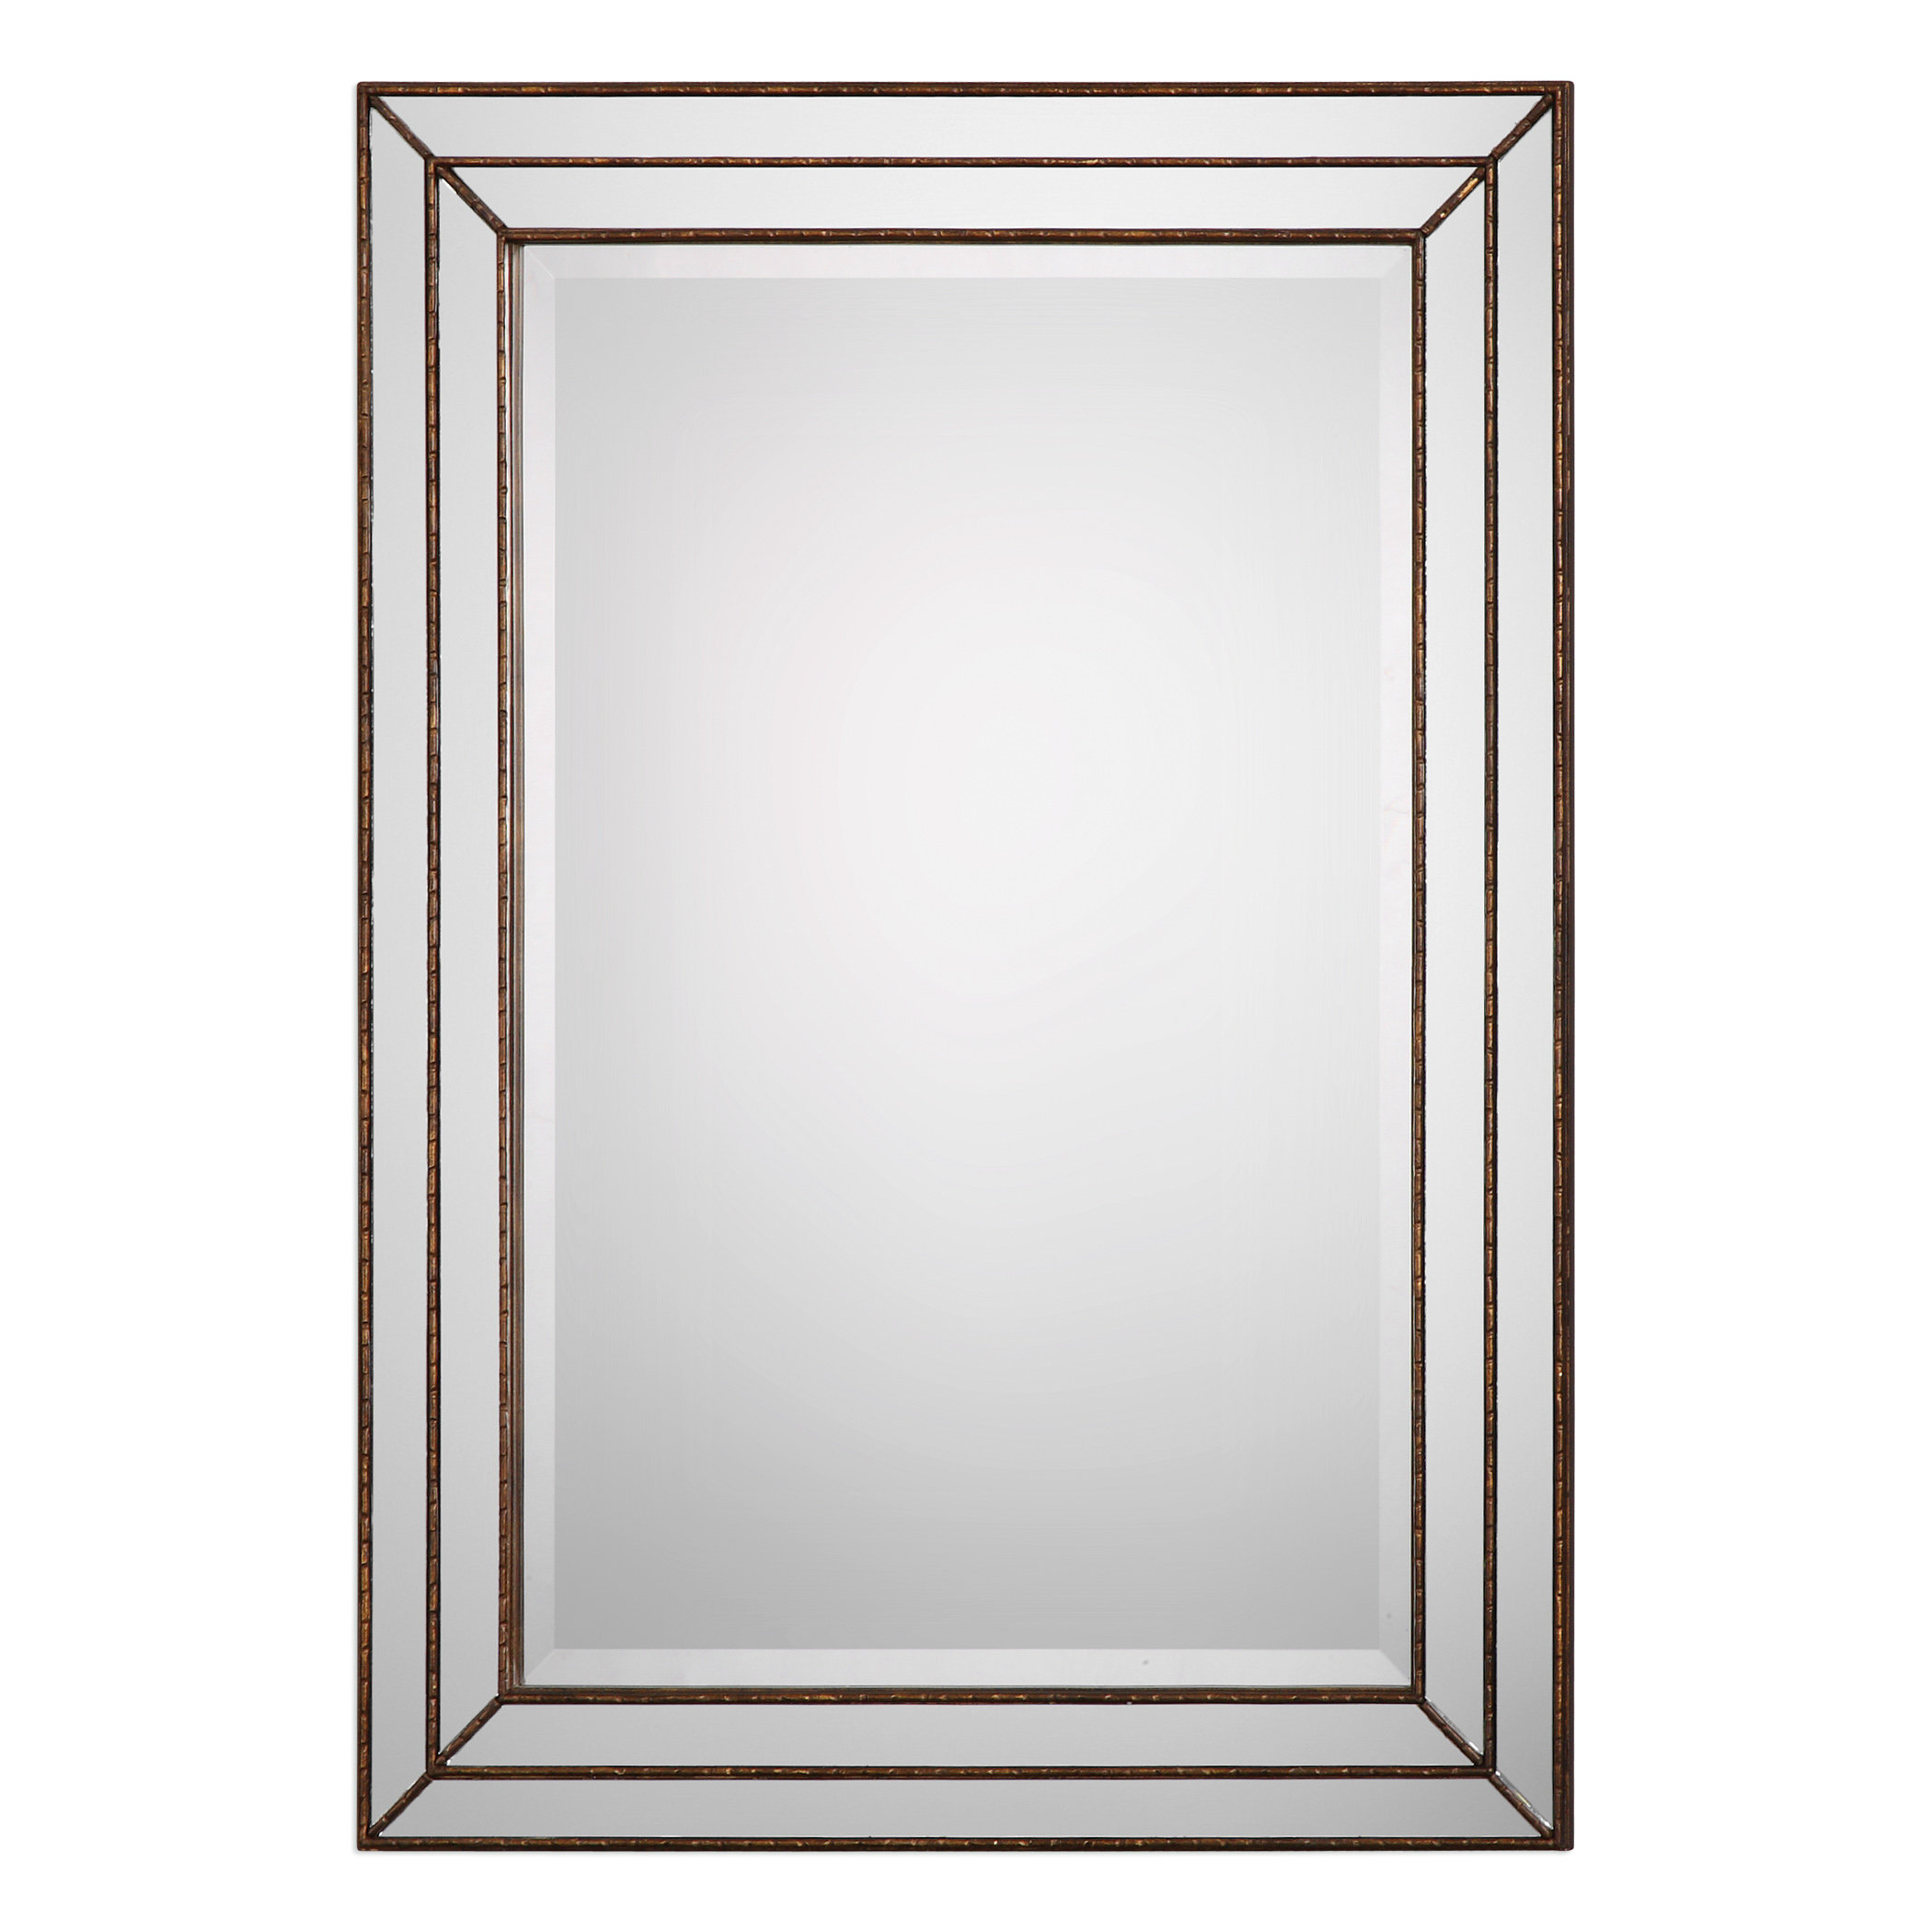 Greyleigh Willacoochee Traditional Beveled Accent Mirror Within Berinhard Accent Mirrors (Image 11 of 20)